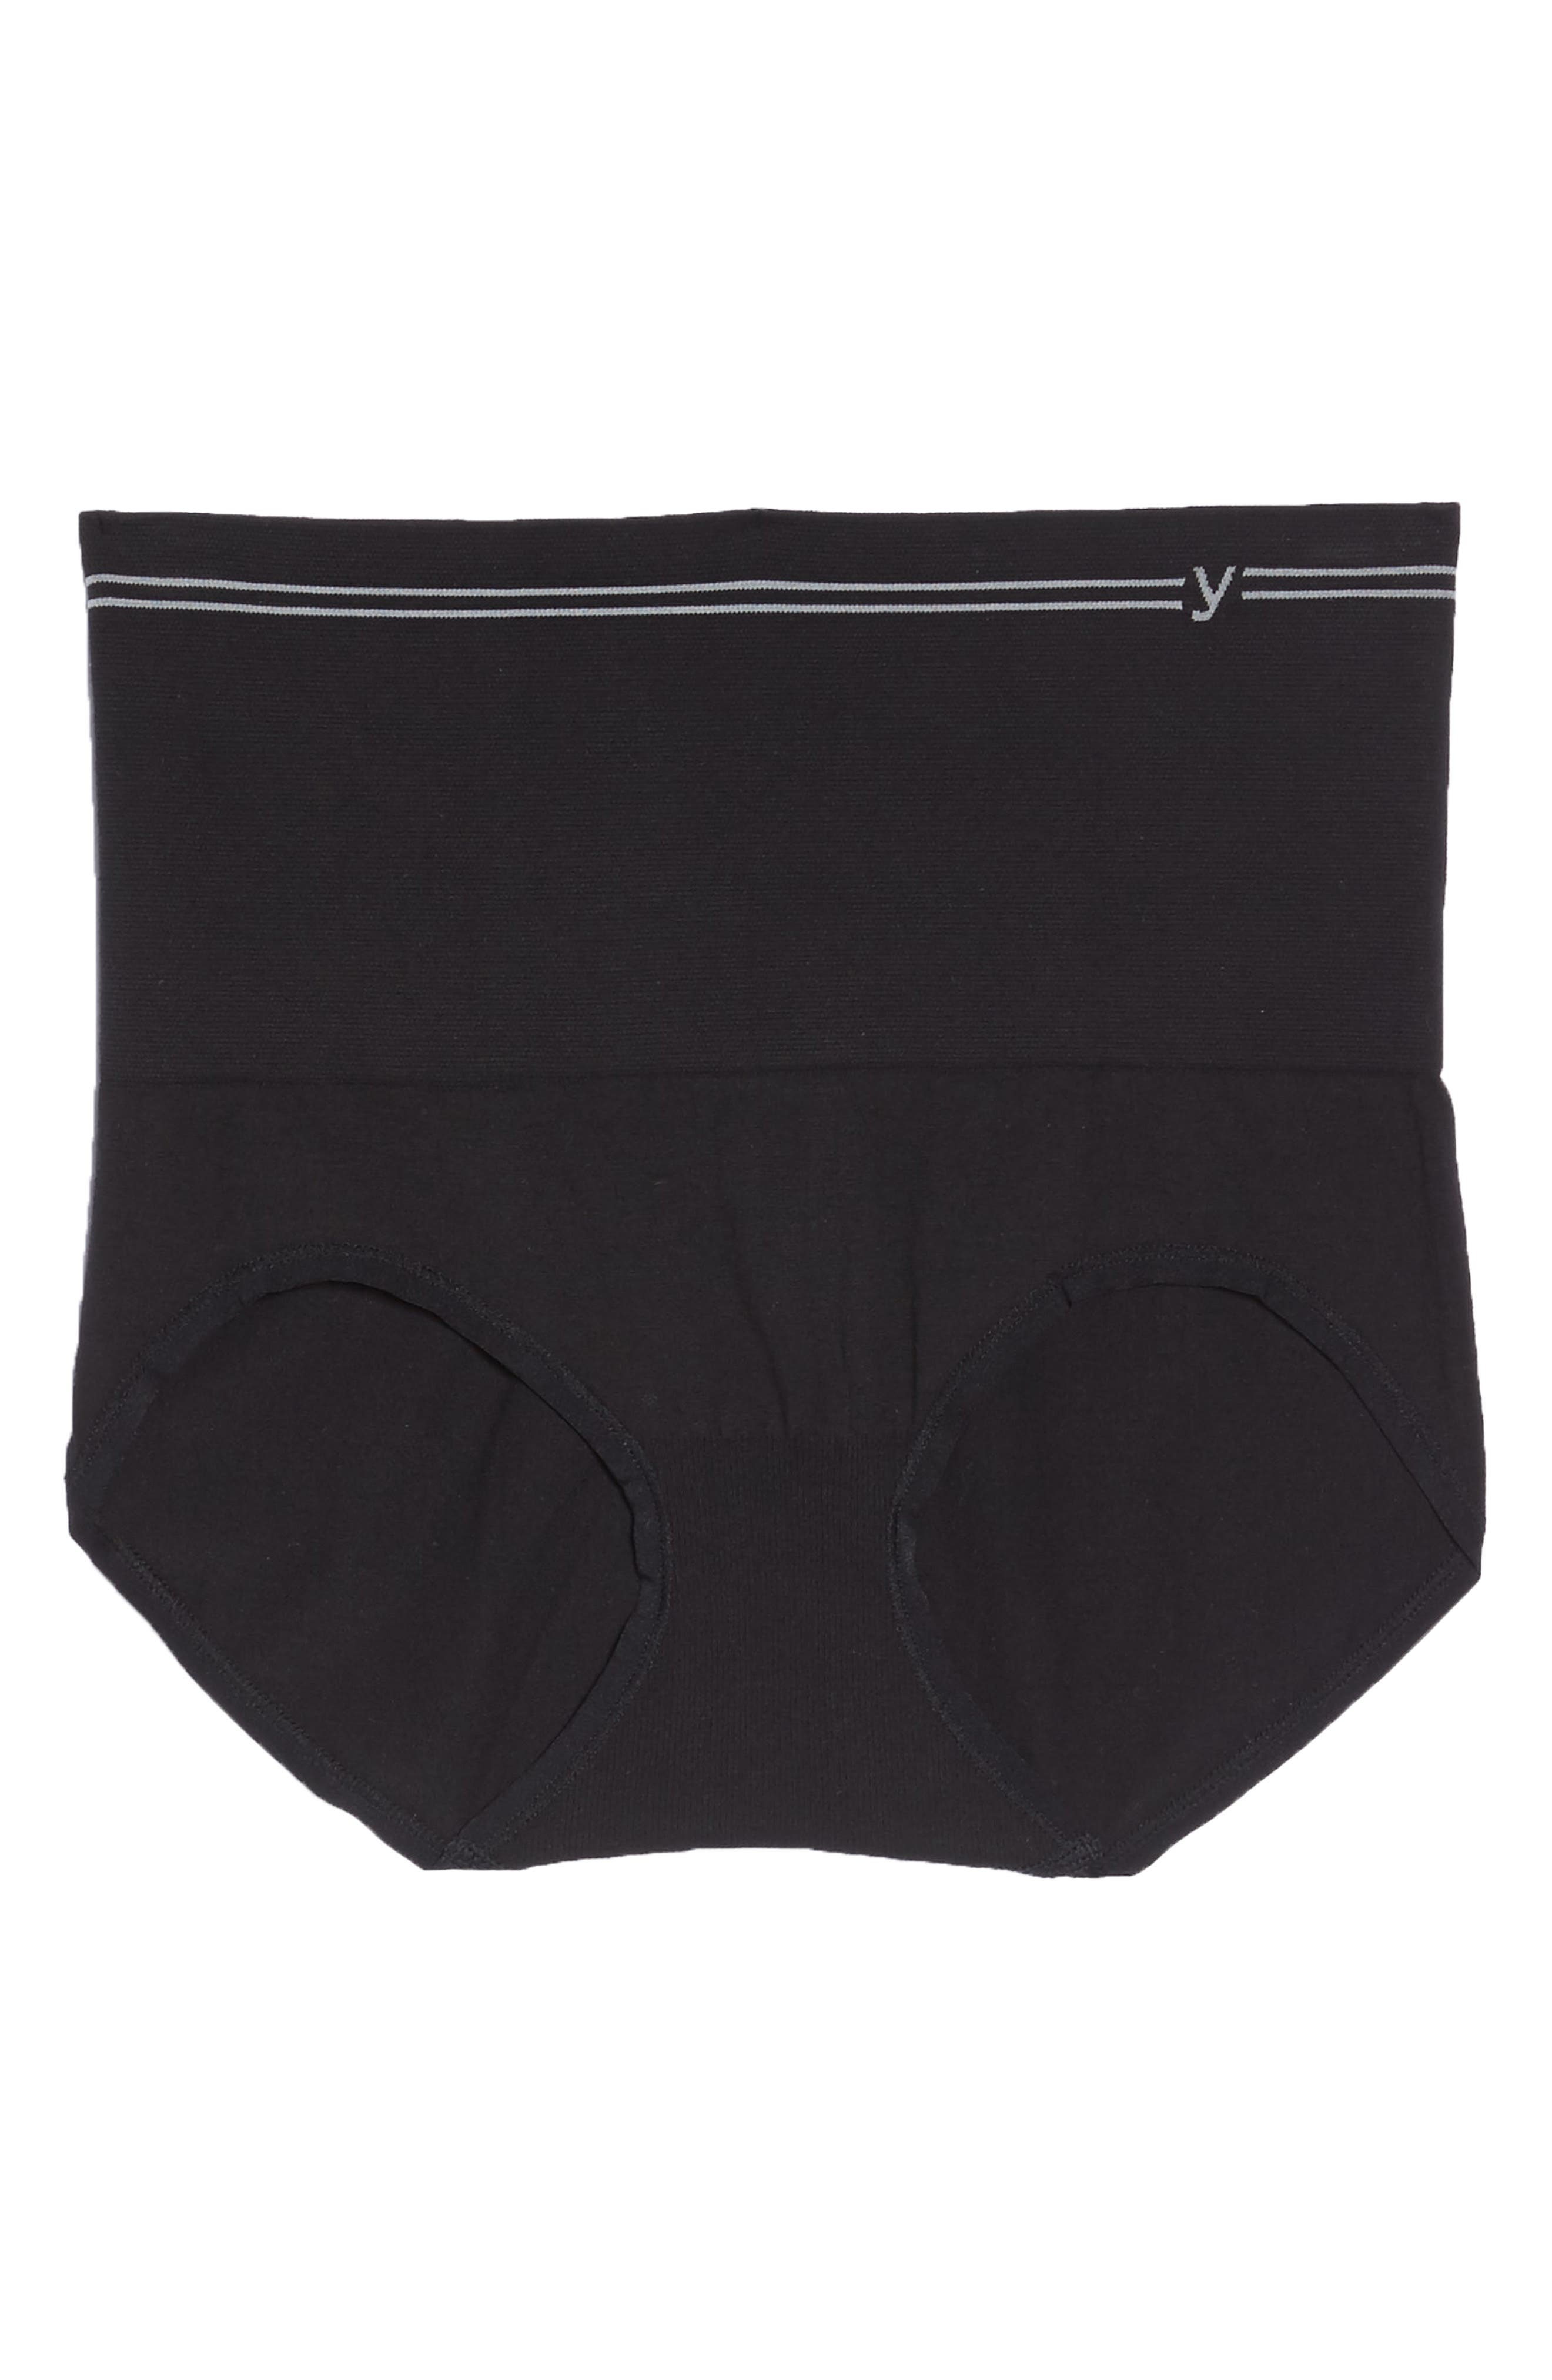 Seamless Shaping Briefs,                             Alternate thumbnail 4, color,                             Black